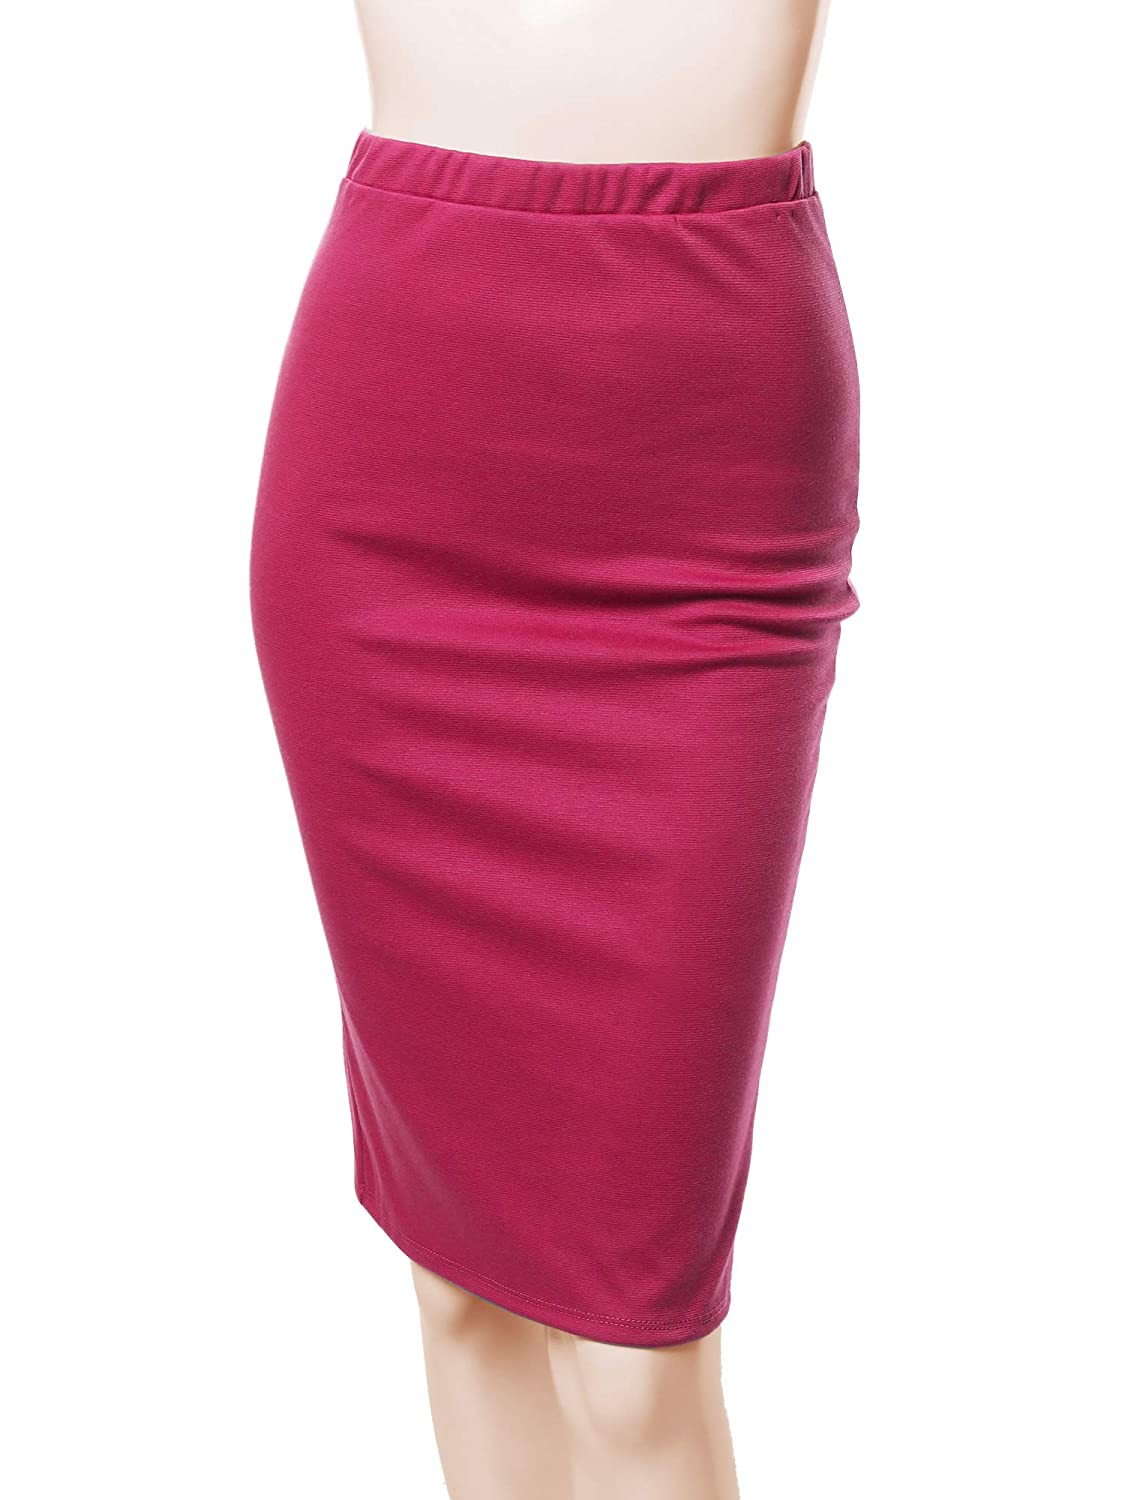 Aawskm0005 Fuchsia Awesome21 Women's Fitted Stretch Solid Print High Waist Midi Pencil Skirt  Made in USA